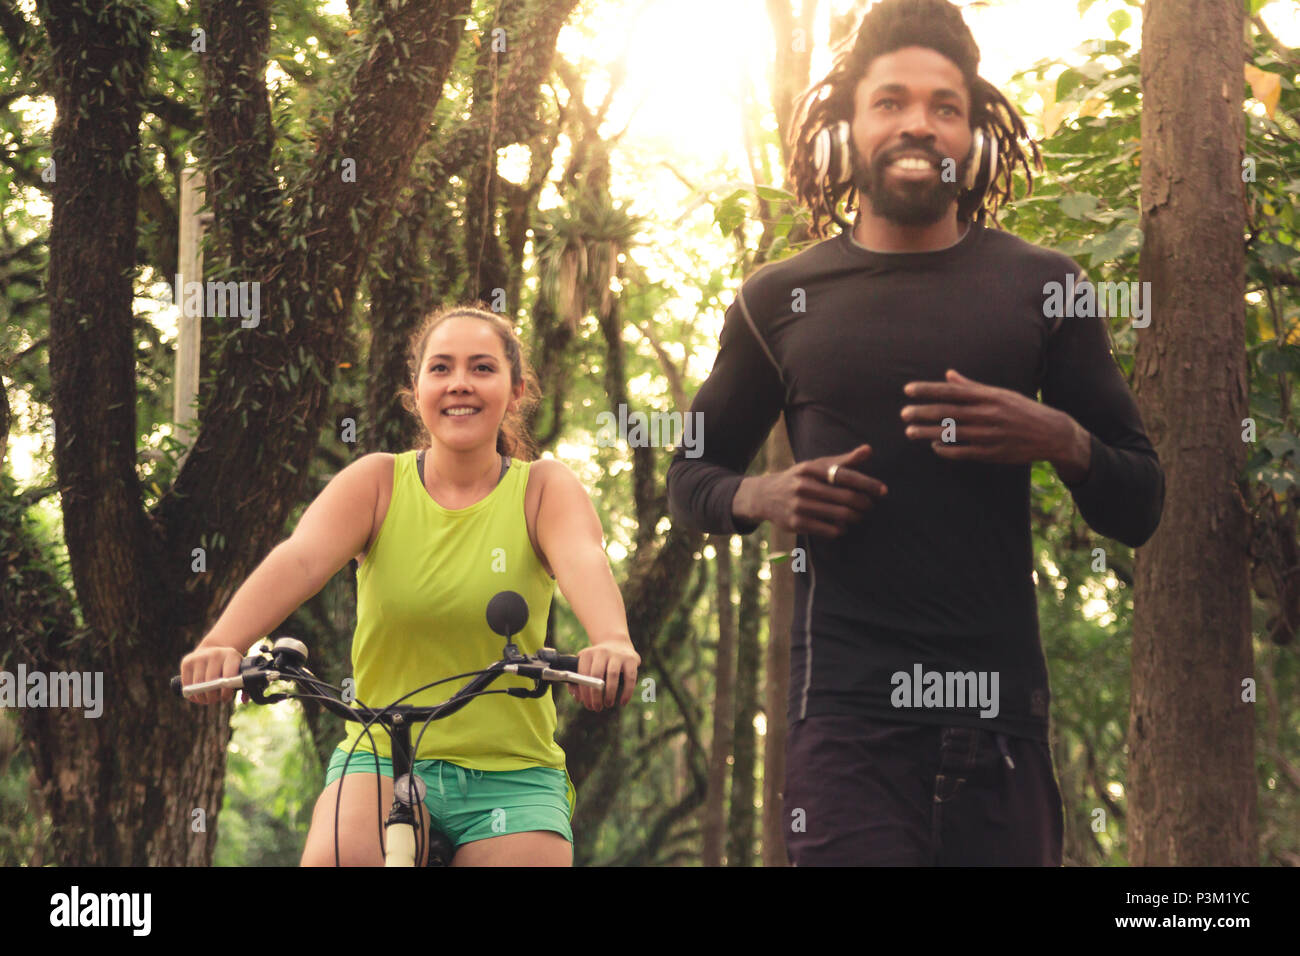 Asian woman is riding a bike and african american man is running in woodland. Multiracial couple exercising. Healthy lifestyle and sport concept - Stock Image